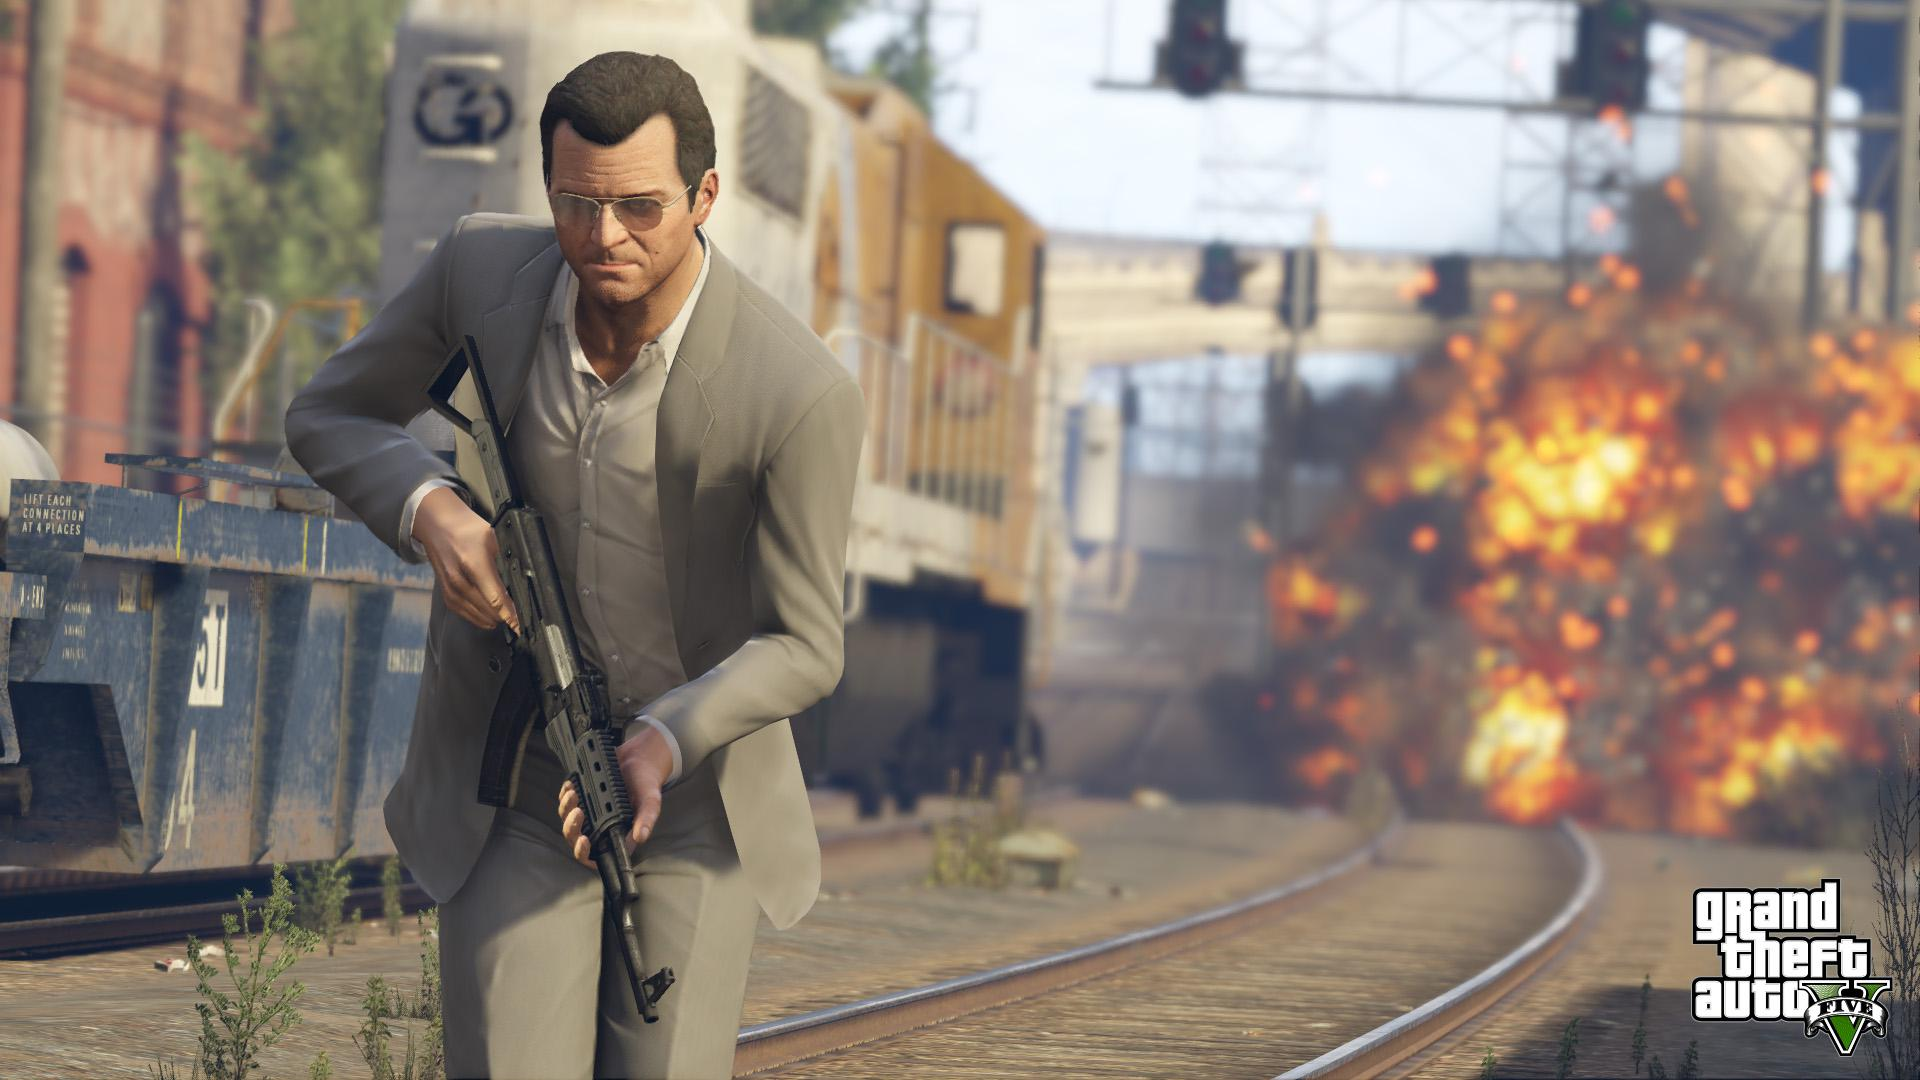 Expect to be able to play with multiple characters in GTA 6